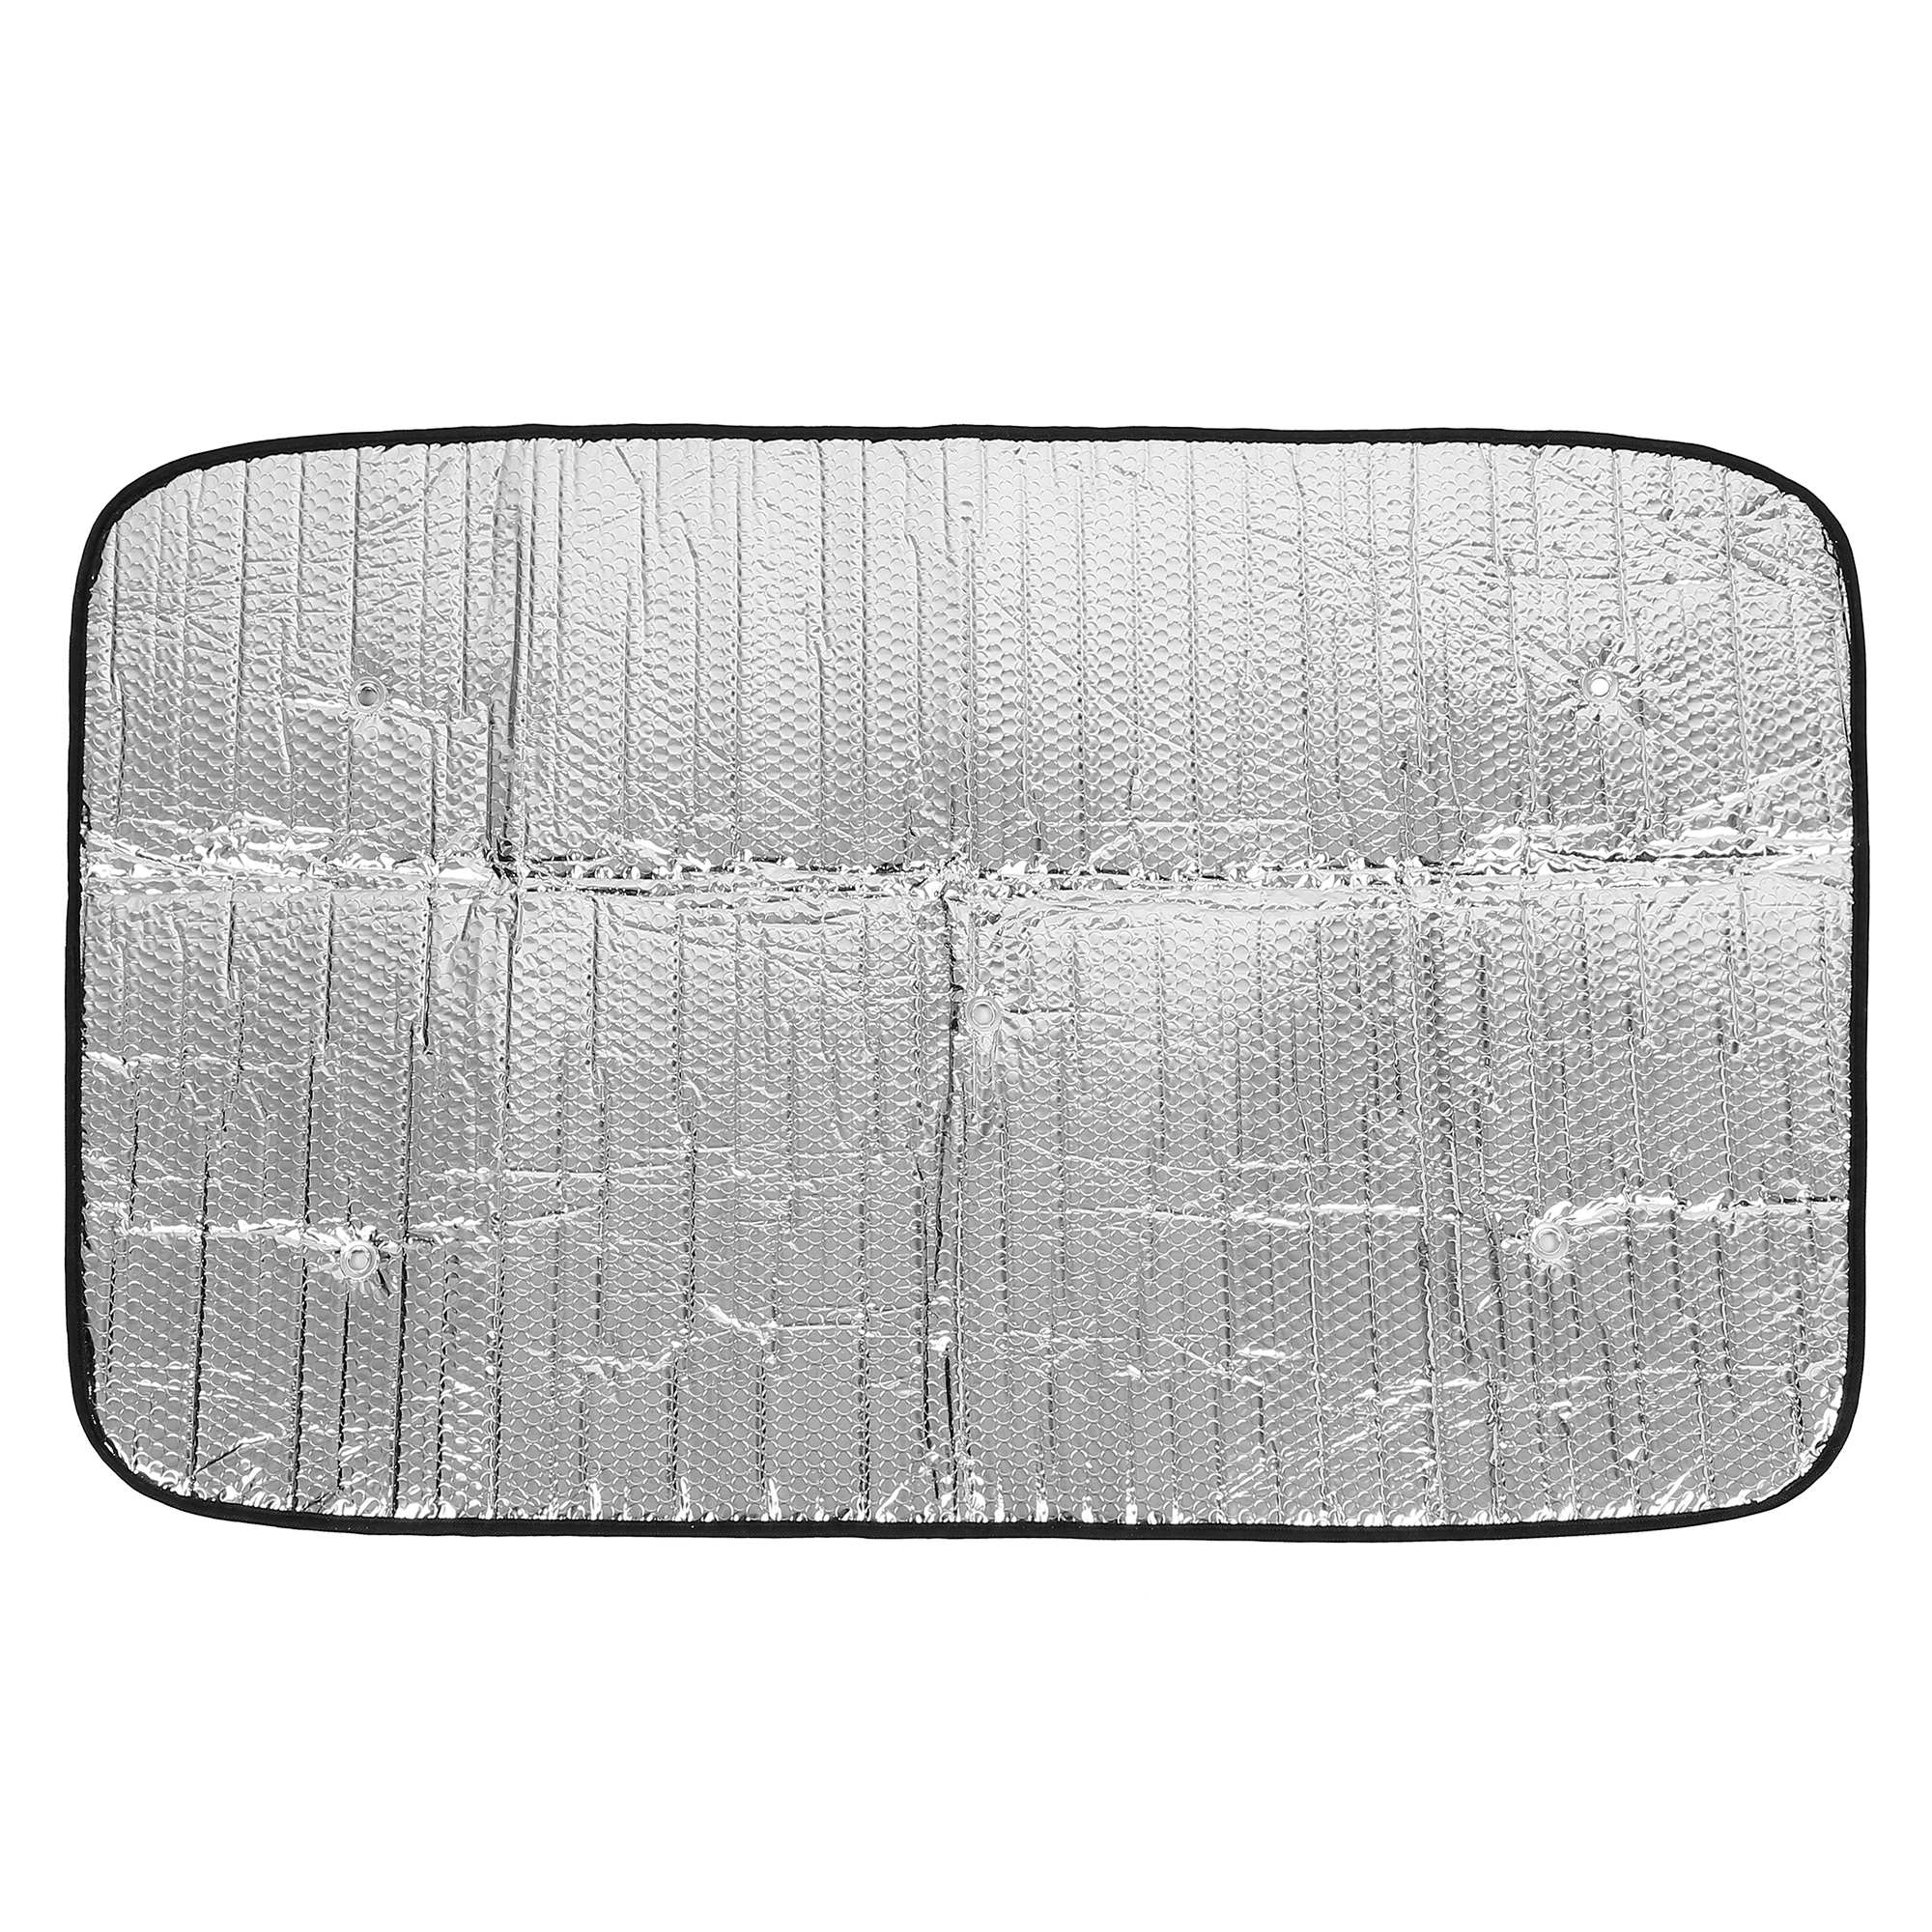 Front Aluminum Foil Sunroof Shade Cover with Suction Cup for Tesla Model 3